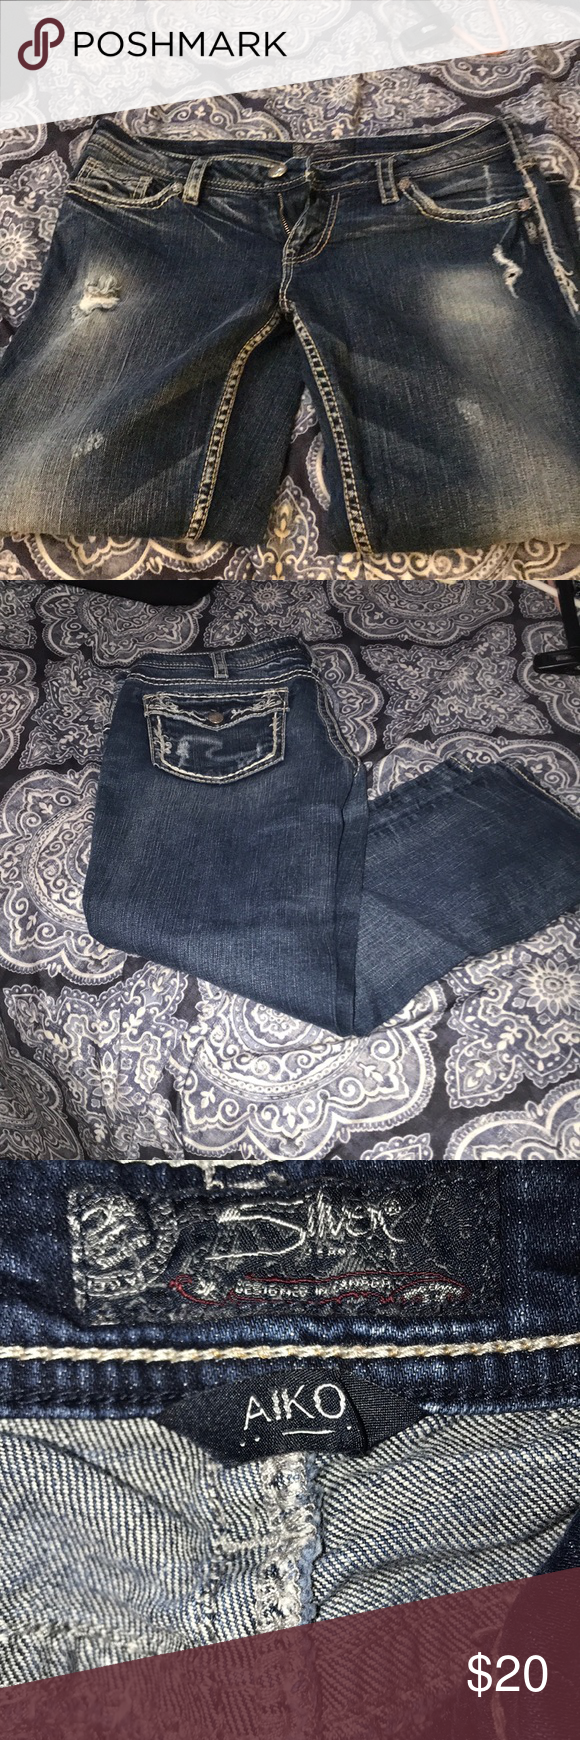 Silver cropped Aiko style jeans EUC Silver cropped jeans w/fake pockets  These were my fave!!! Silver Jeans Jeans Ankle & Cropped #wfaves Silver cropped Aiko style jeans EUC Silver cropped jeans w/fake pockets  These were my fave!!! Silver Jeans Jeans Ankle & Cropped #wfaves